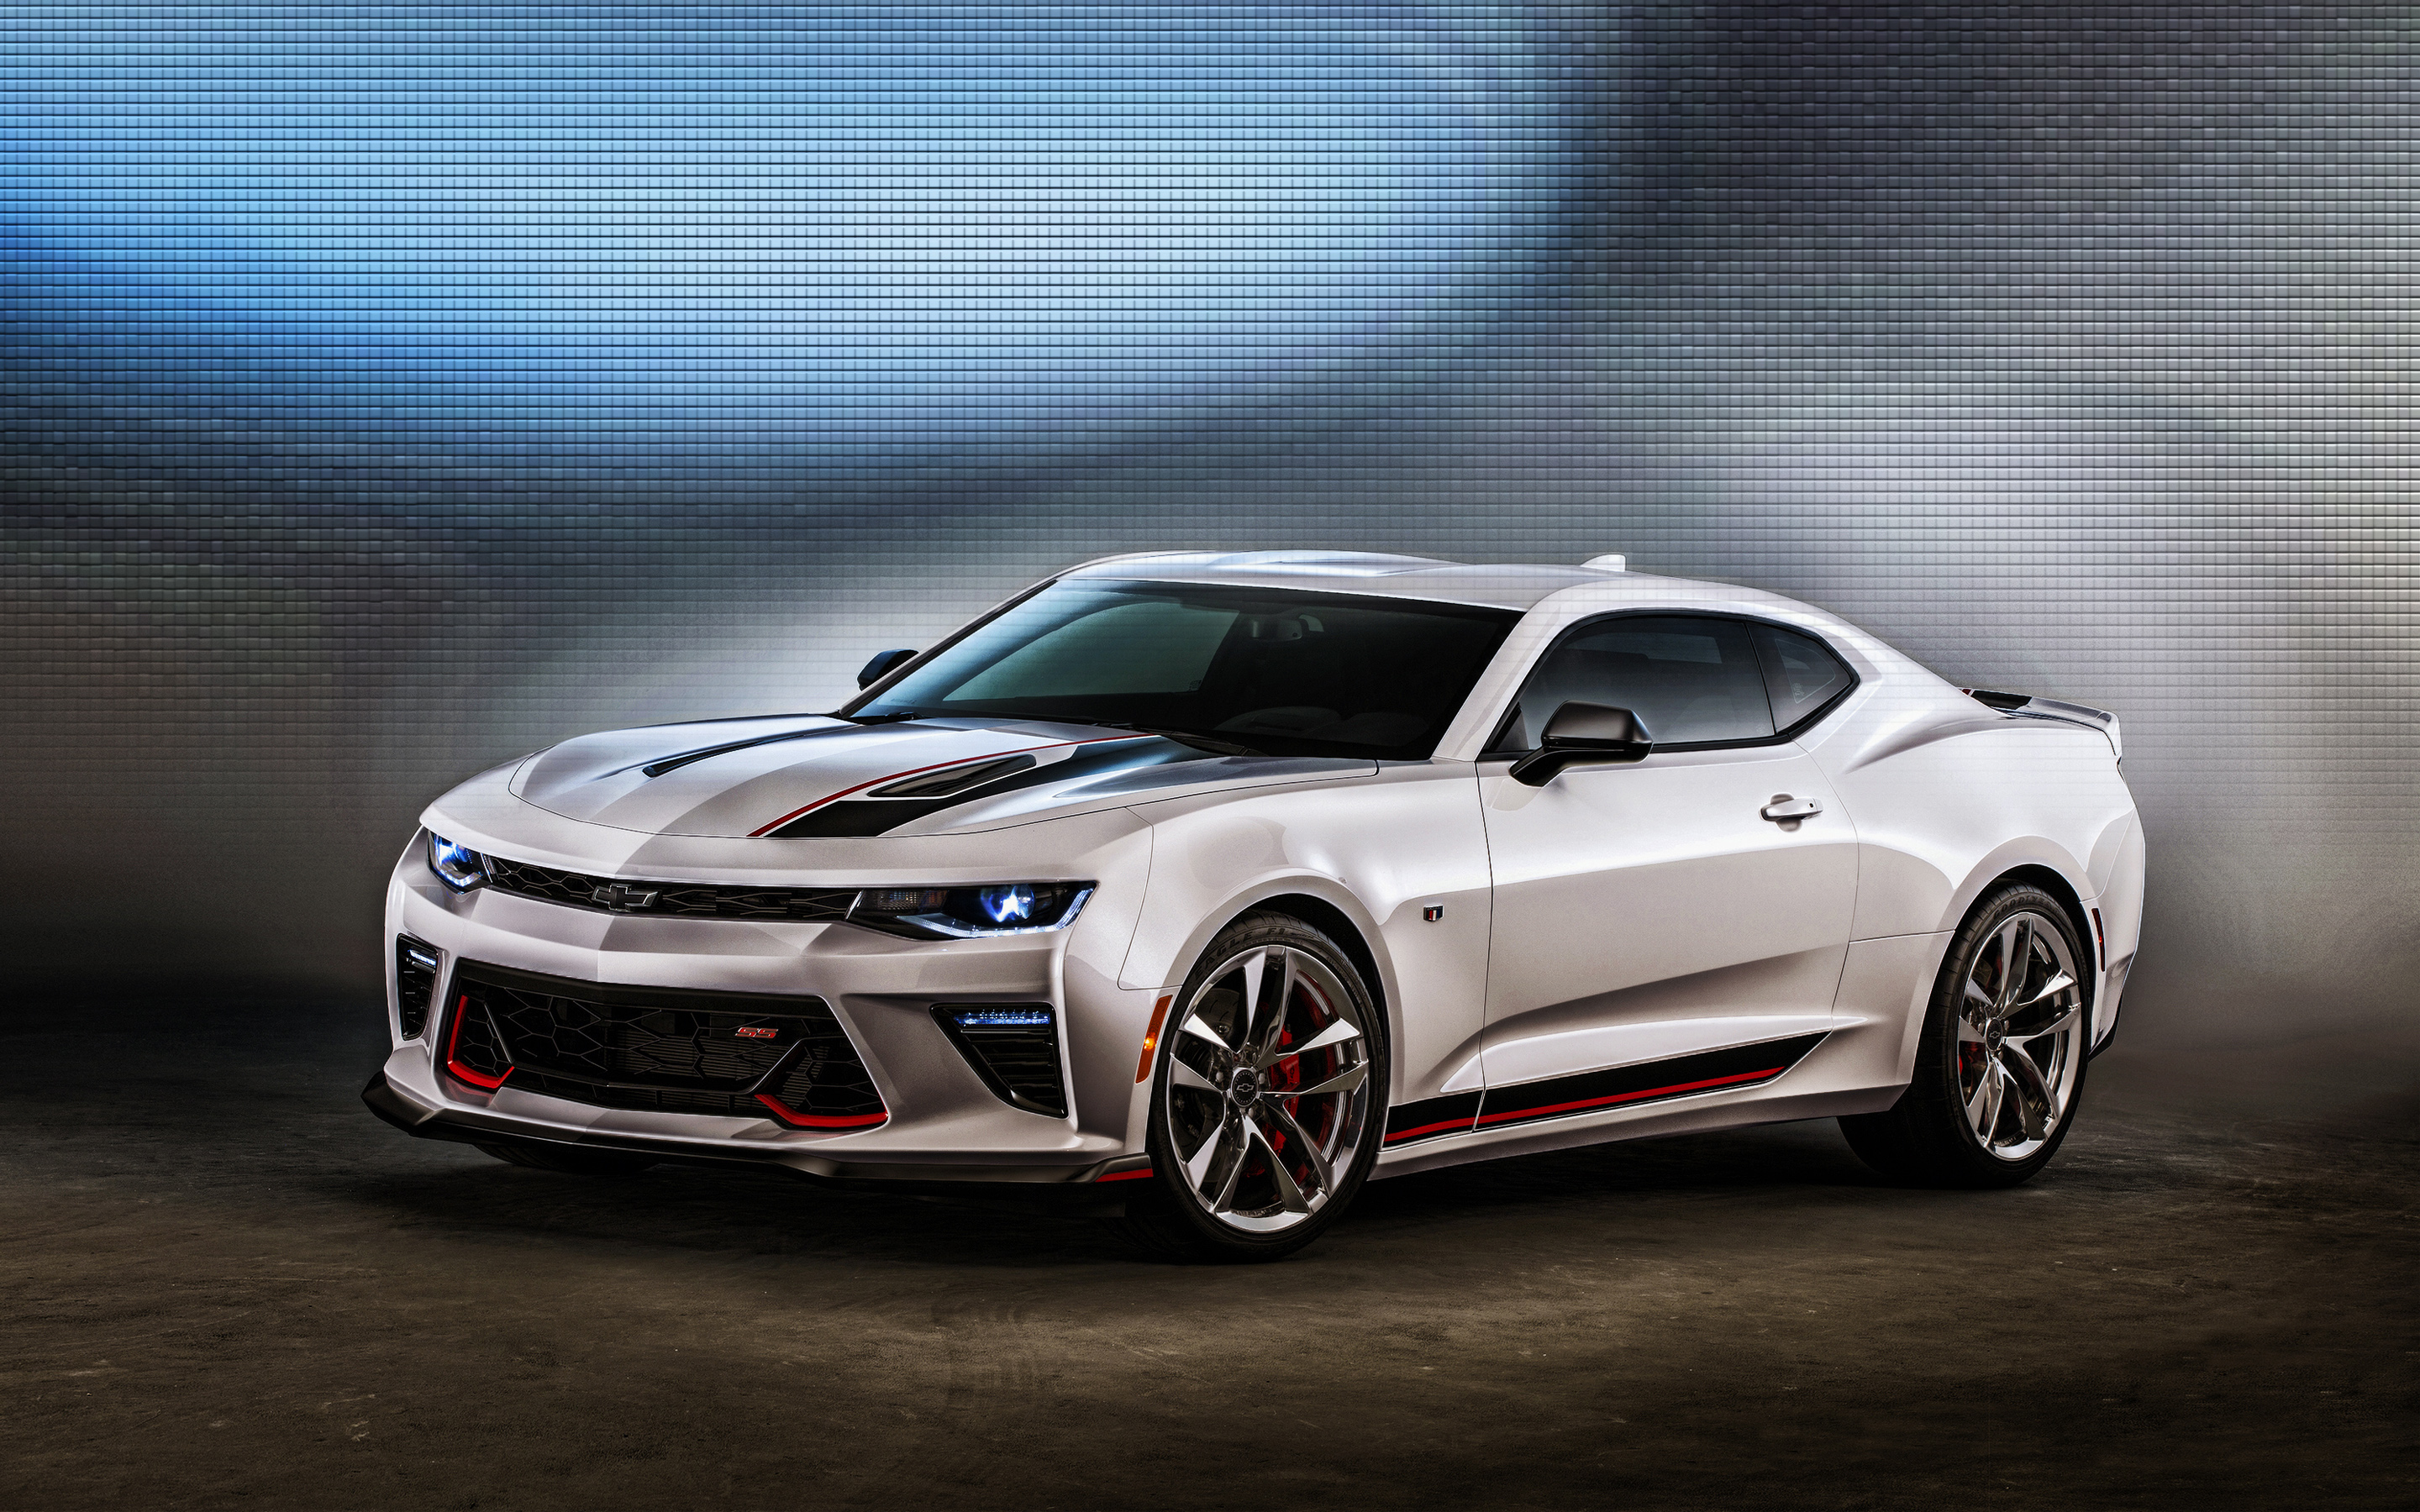 2016 Chevrolet Camaro SS Concept Wallpapers HD Wallpapers 2880x1800